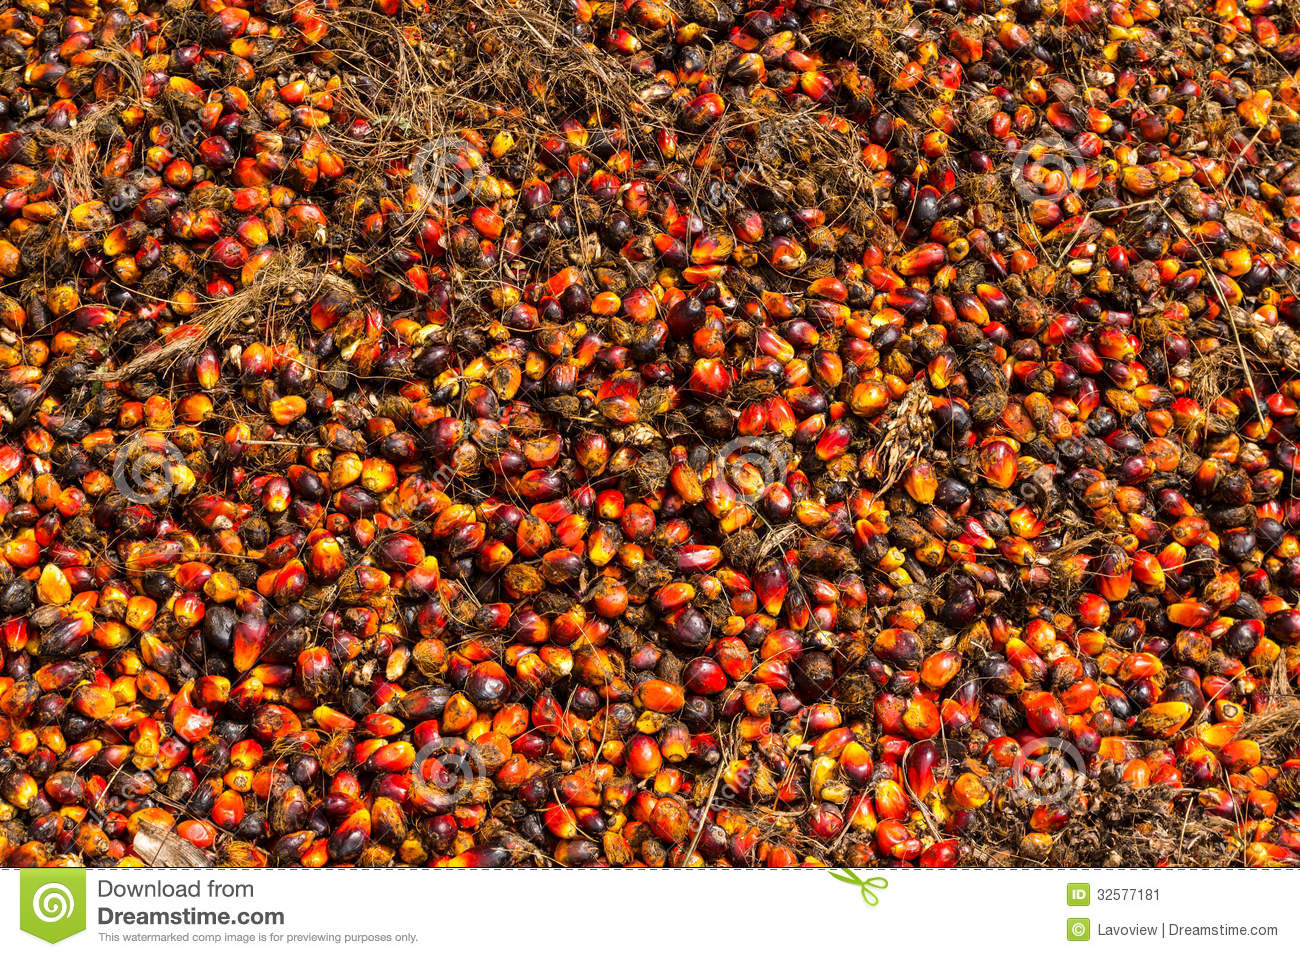 Oil palm fruits